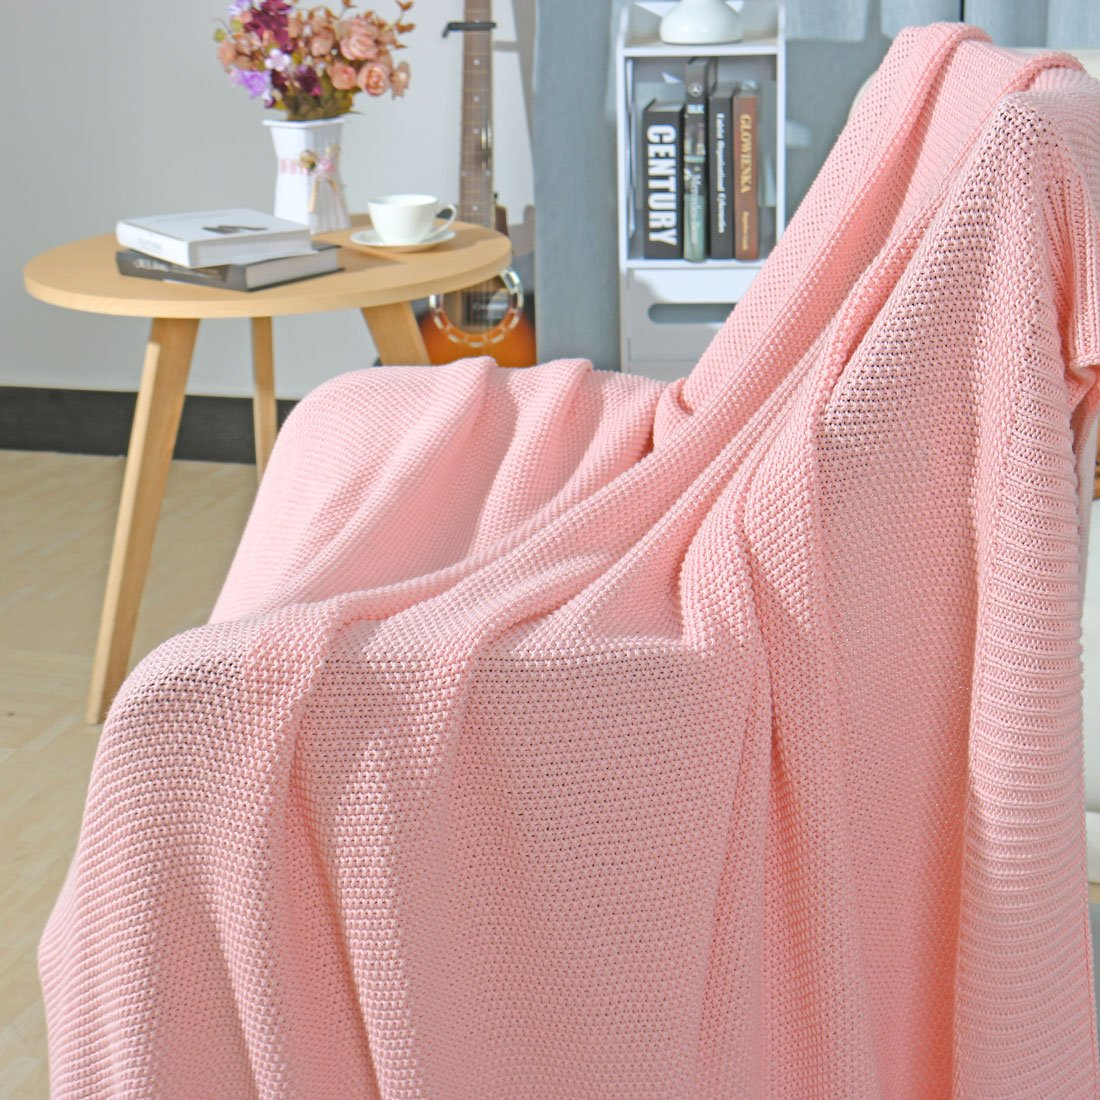 PICCOCASA 100/% Cotton Knit Throw Blanket,Lightweight Solid Decorative Sofa Throws Soft Pink Knitted Throw Blankets for Sofa Couch,50 x 60 50 x 60